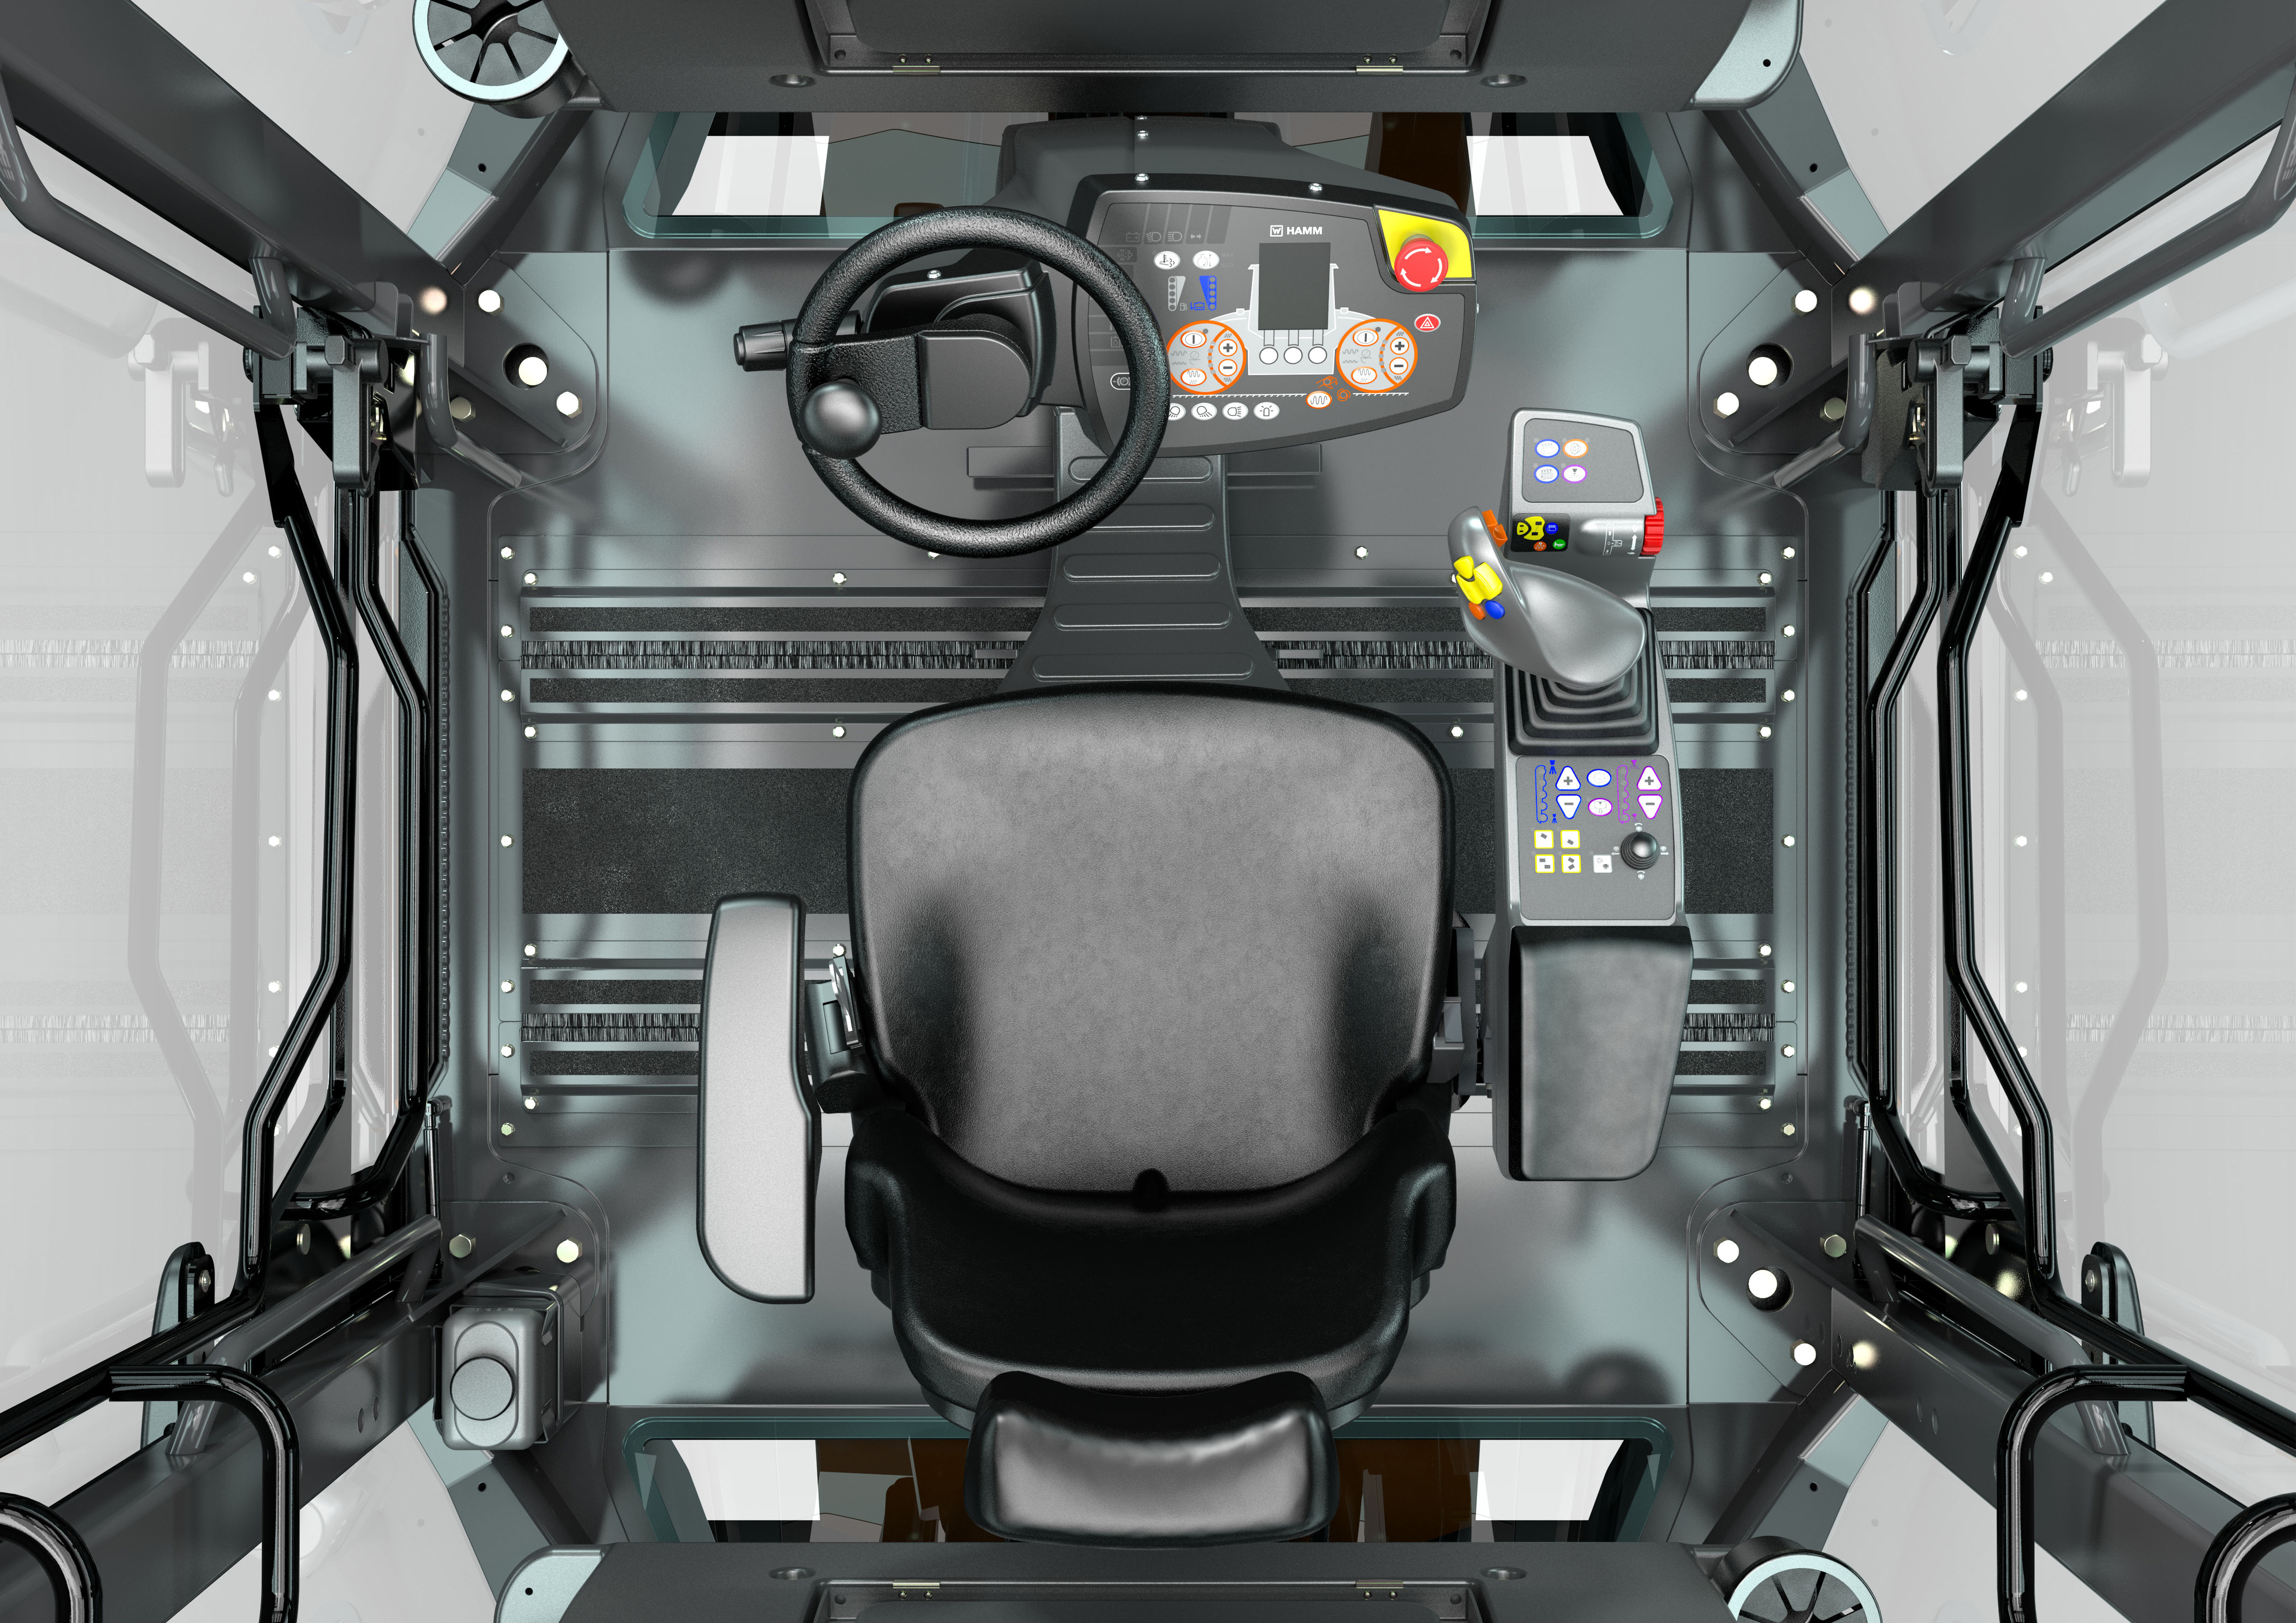 Drivers experience the benefits of the Hamm Easy Drive operating concept in the DV+: the driver's seat, steering wheel, joystick and multifunction armrest form a harmonious unit that enables uninterrupted, relaxed working.